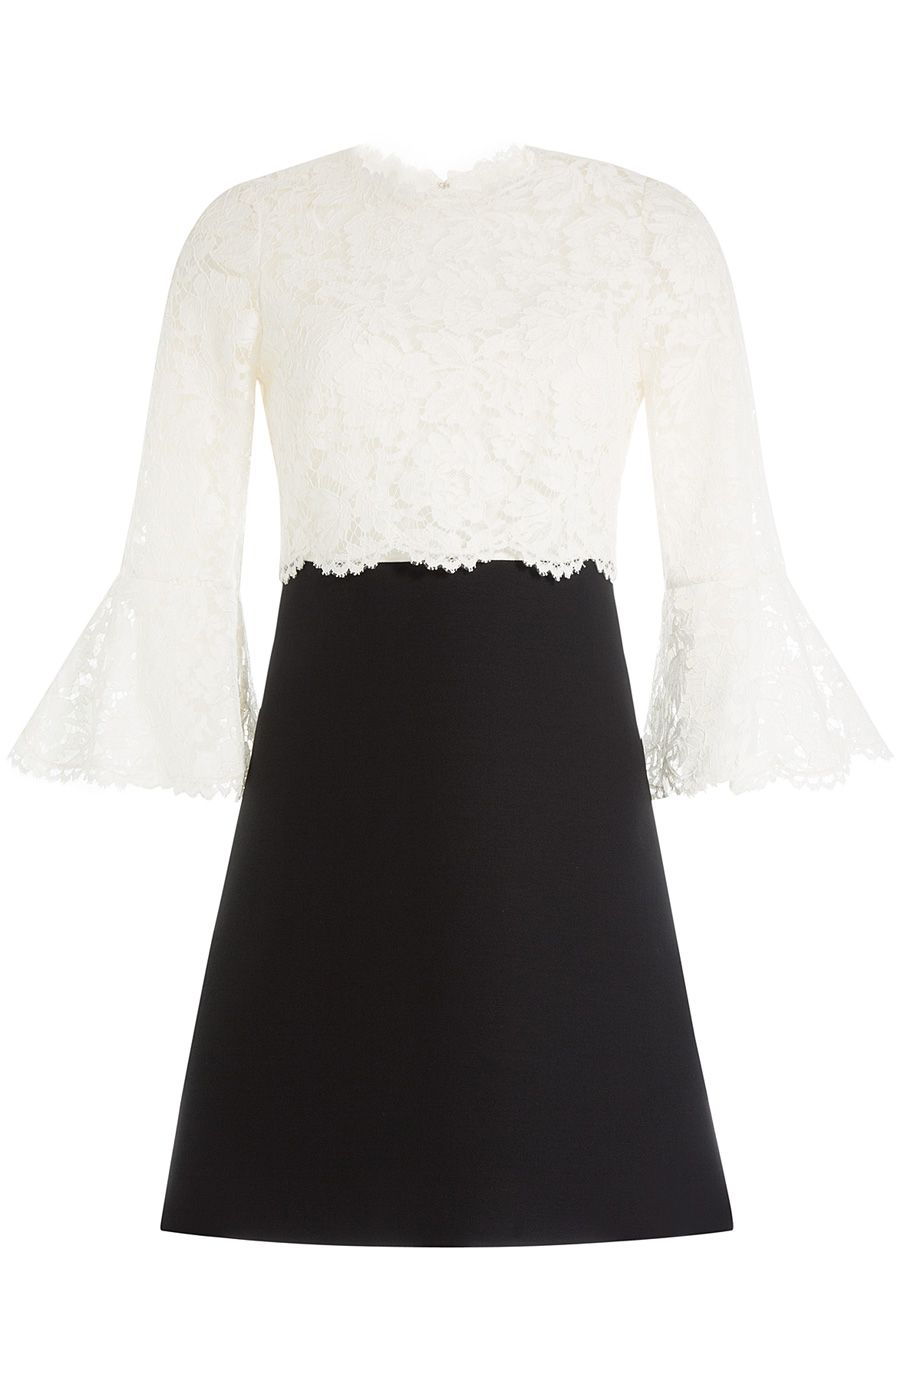 VALENTINO Wool-Silk Lace Cocktail Dress. #valentino #cloth #cocktail & party